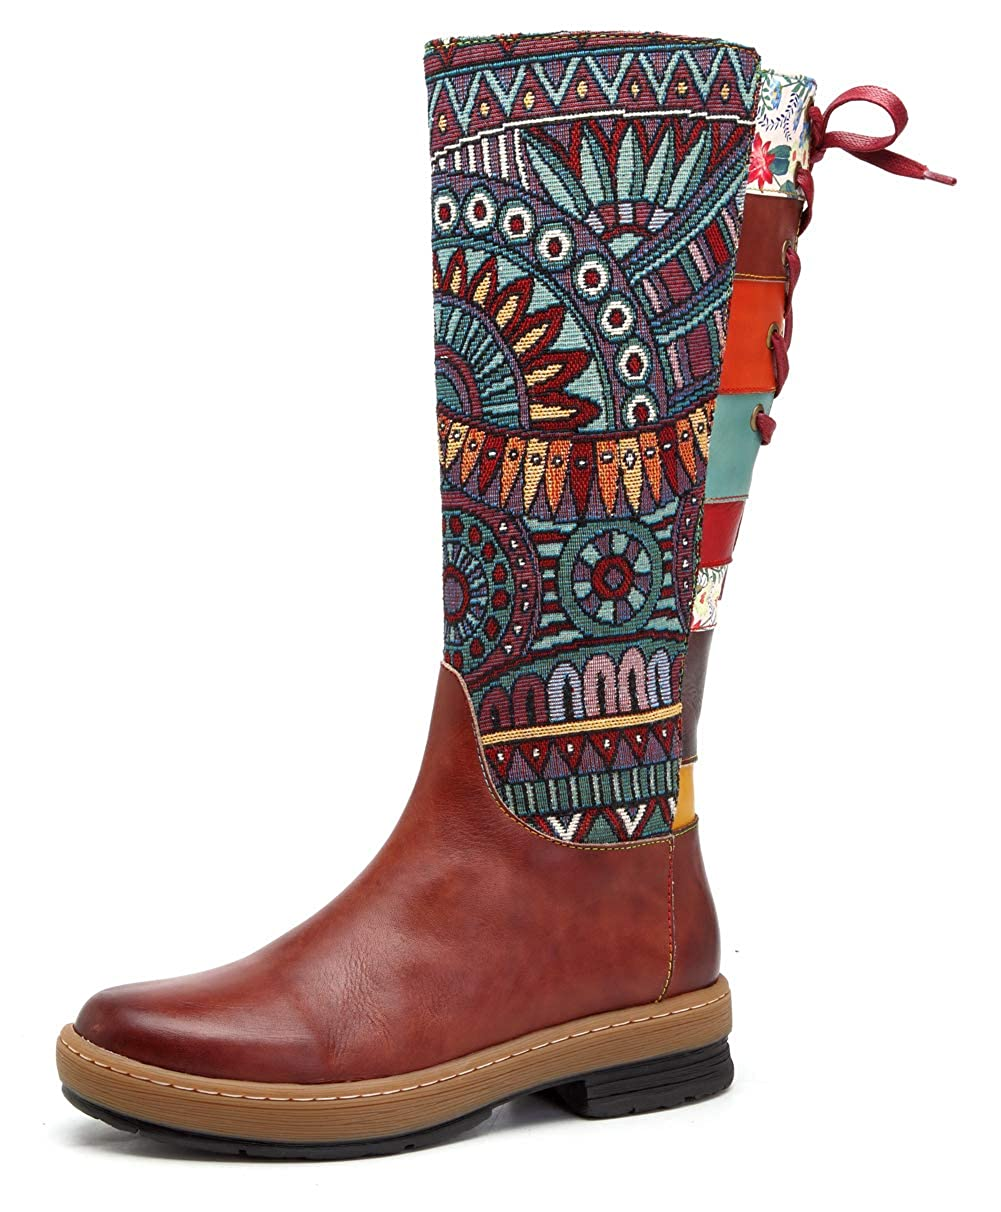 Honeystore Women's Retro Carving Pattern Leather Knee High Boots Shoes Round Toe Boot Zipper HSO1808B3